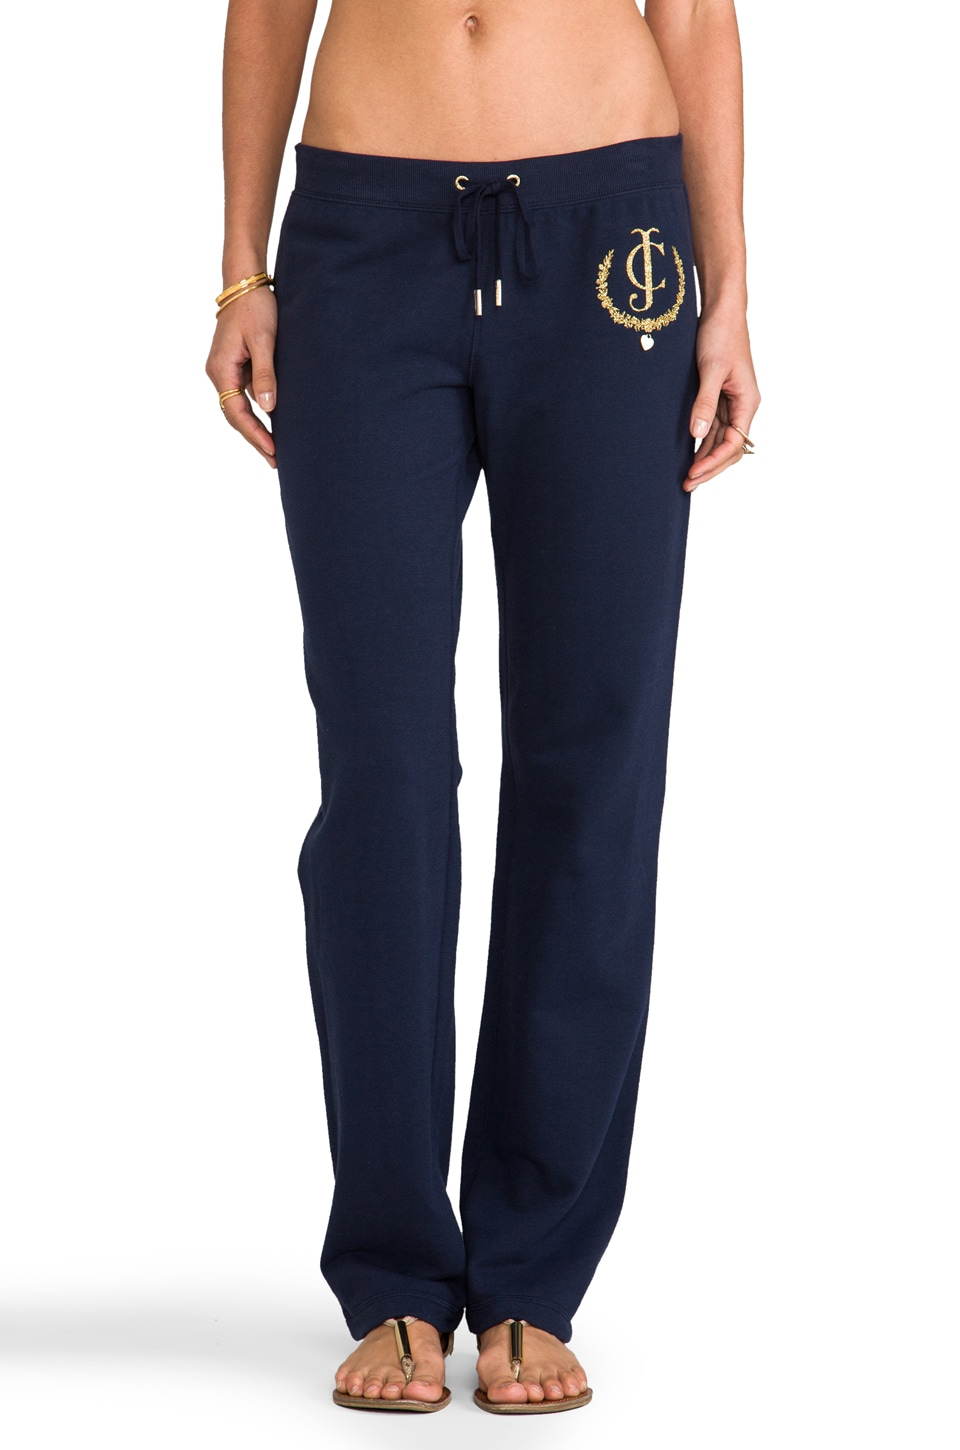 Juicy Couture Fleece Graphic Pant in Regal